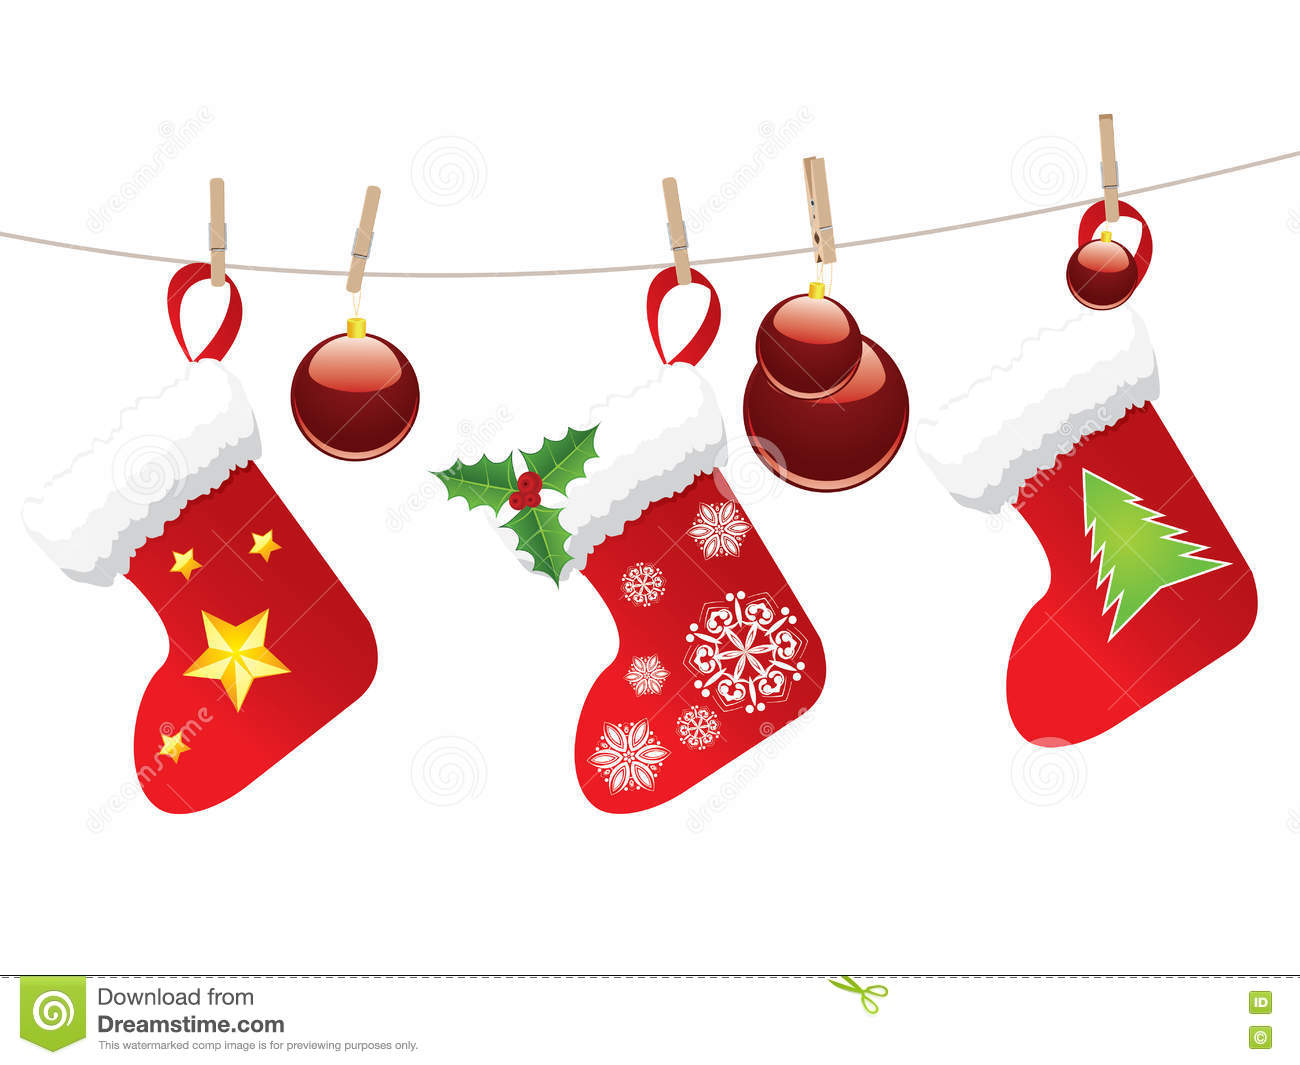 Christmas Stockings On Rope Stock Vector - Illustration of ...